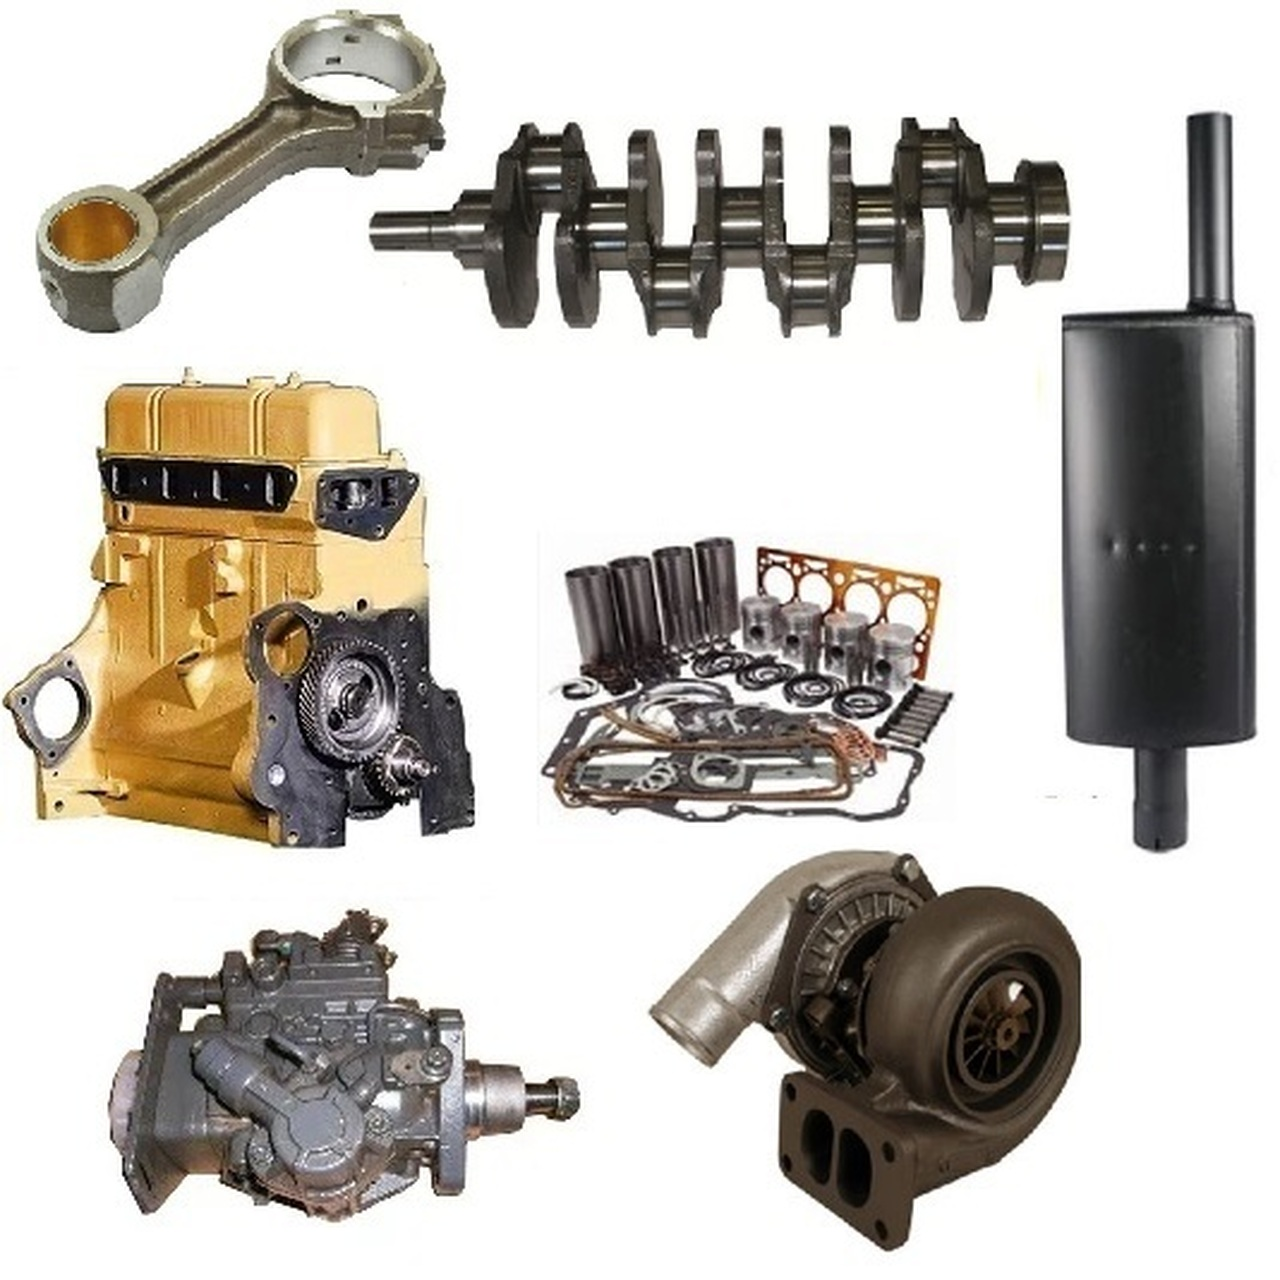 Engine and Fuel System